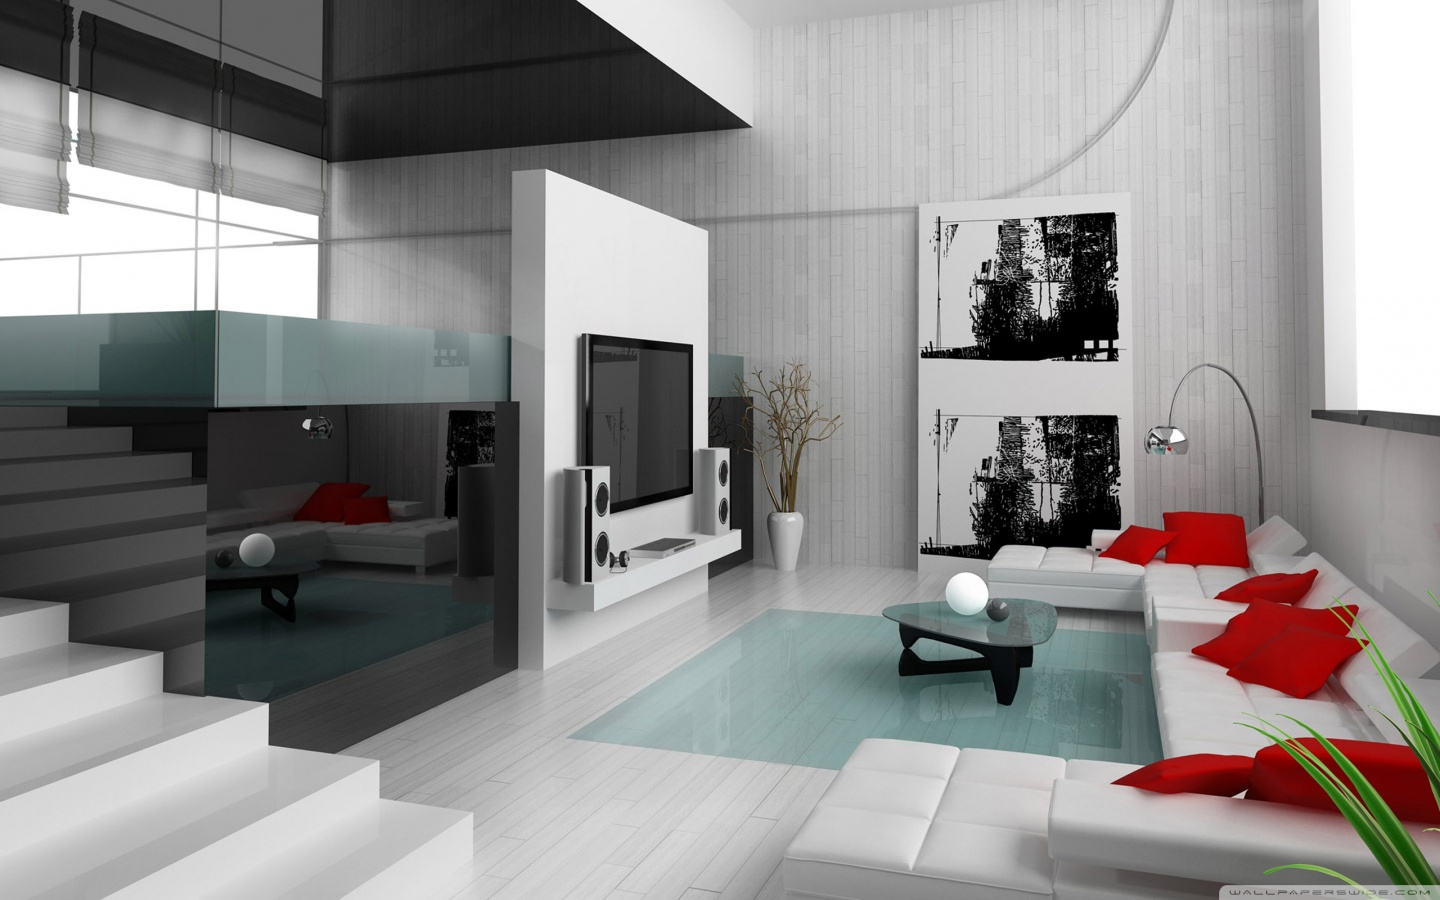 Minimalist interior design imagination art architecture for Home design ideas interior